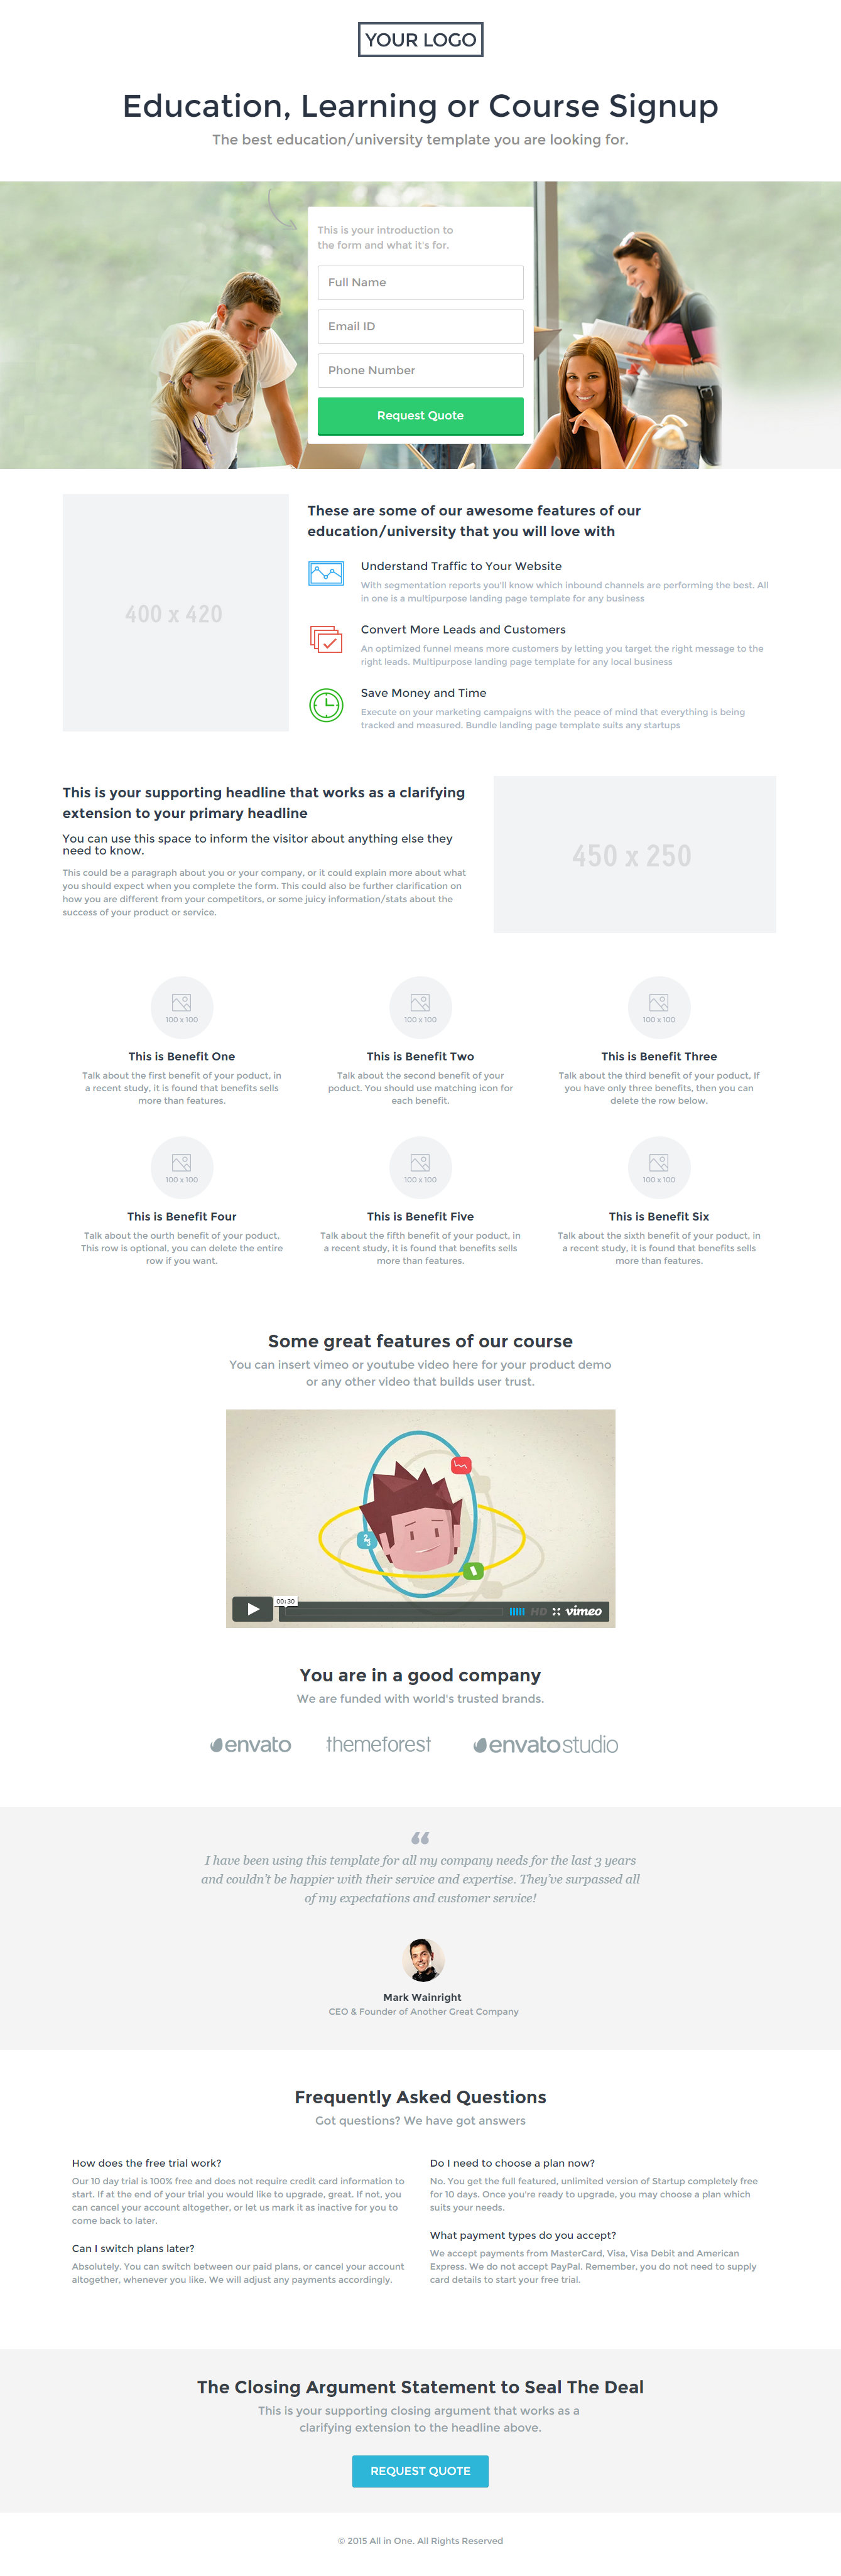 All in One - Multipurpose Landing Page Template